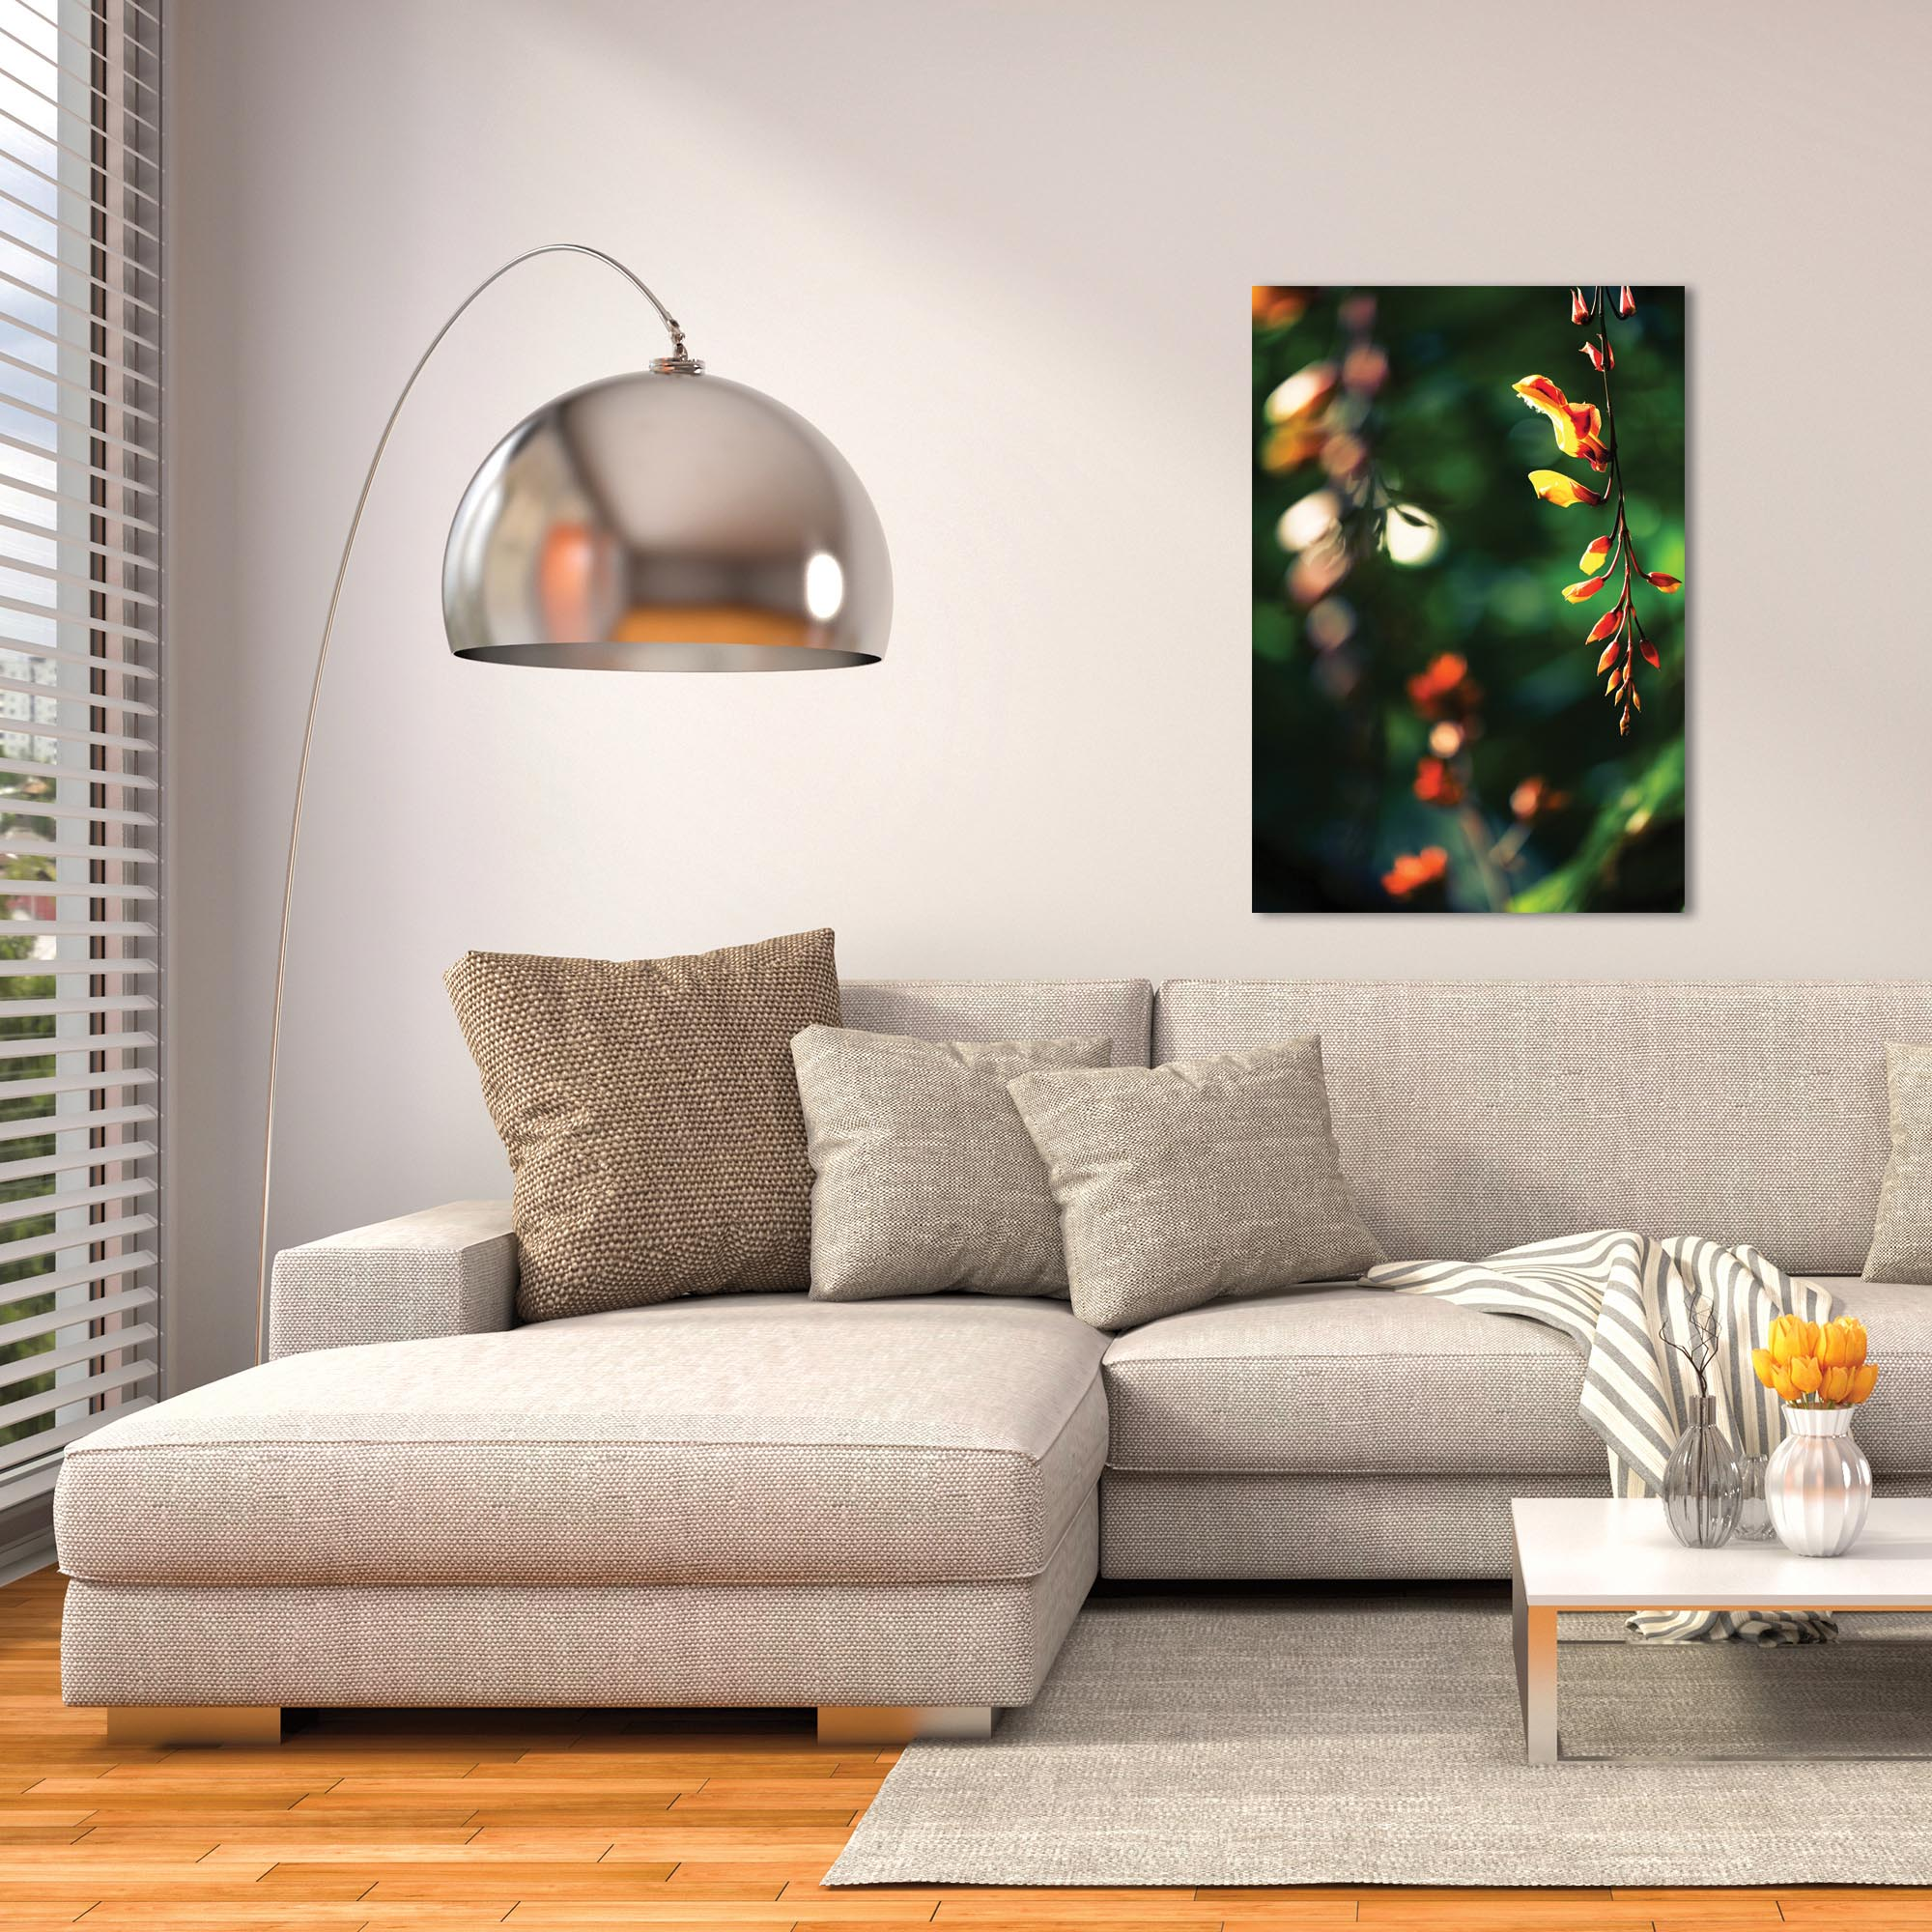 Nature Photography 'Hanging Flowers' - Flower Blossom Art on Metal or Plexiglass - Lifestyle View